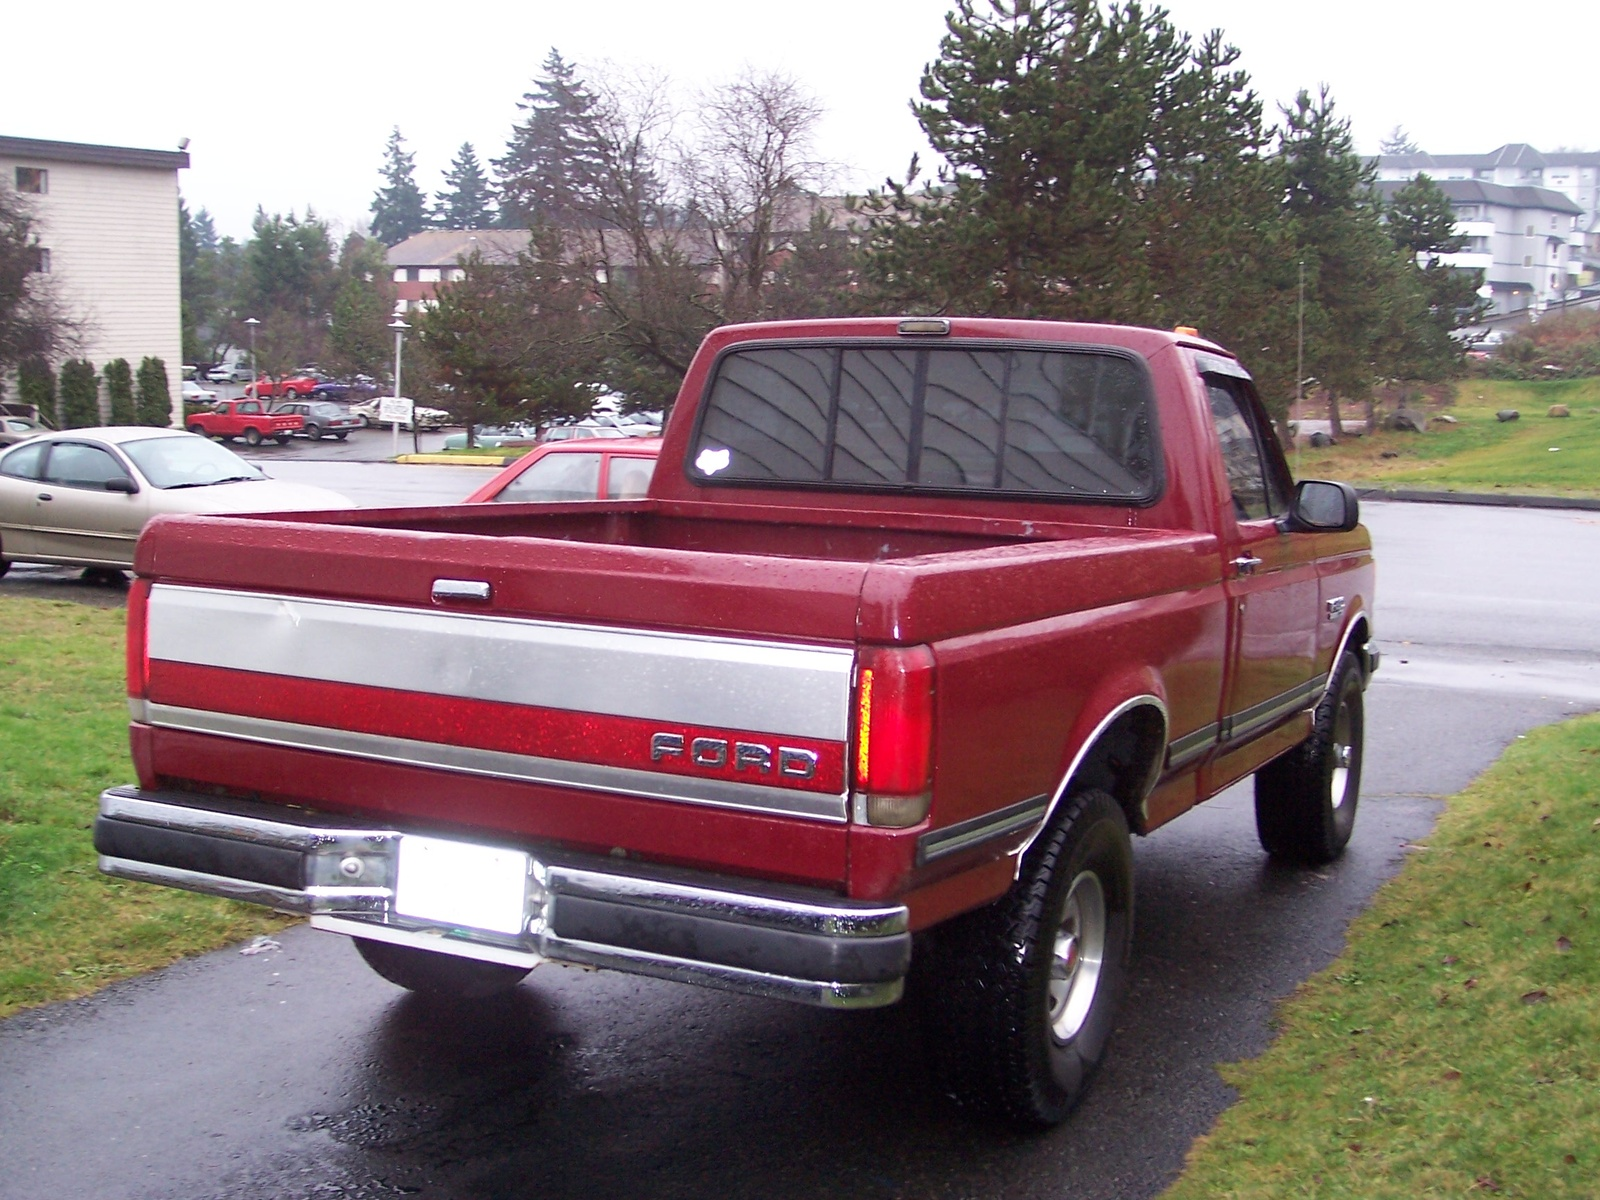 Ford f-150 1990 photo - 8